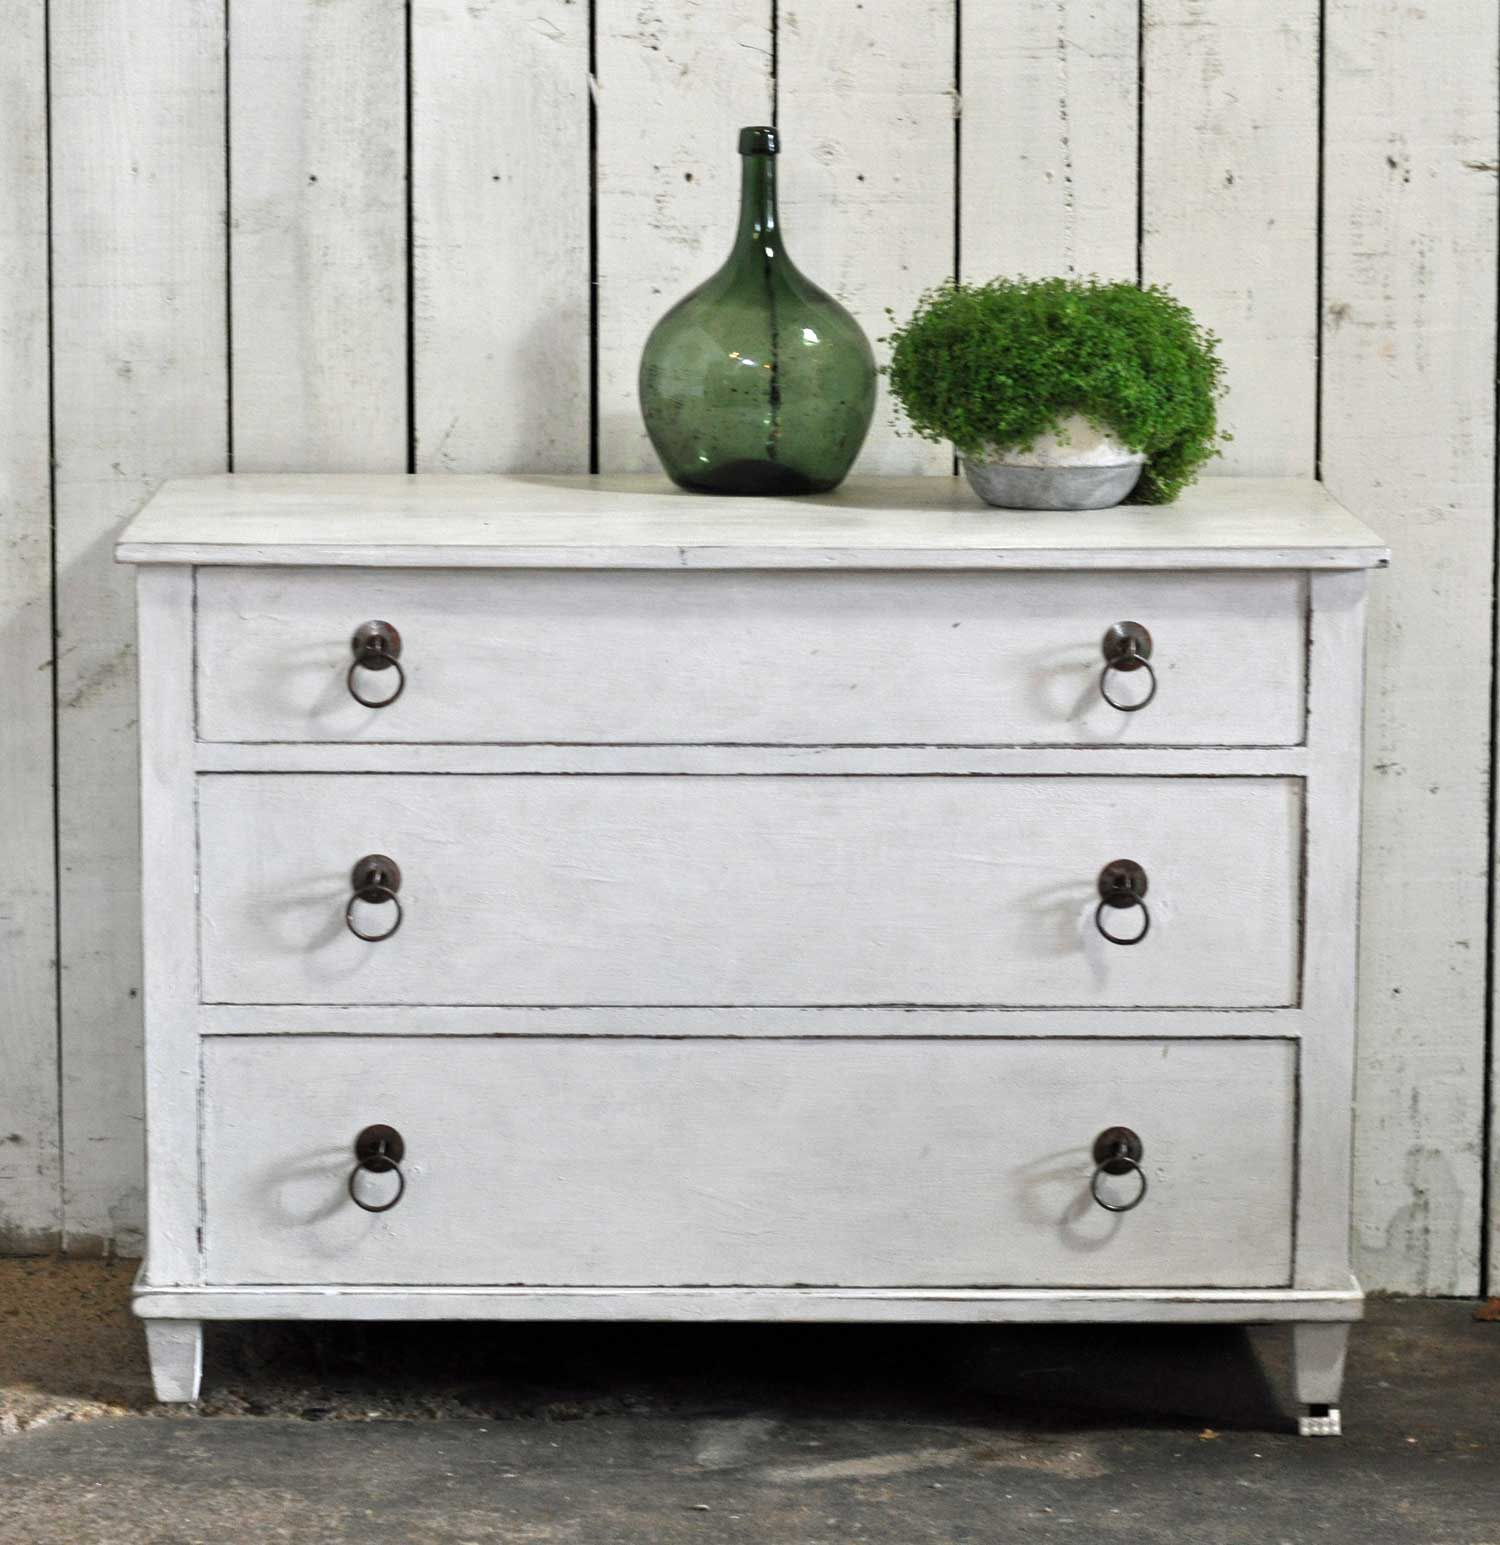 Vintage Chest Of Three Drawers Hand Painted in Antique White